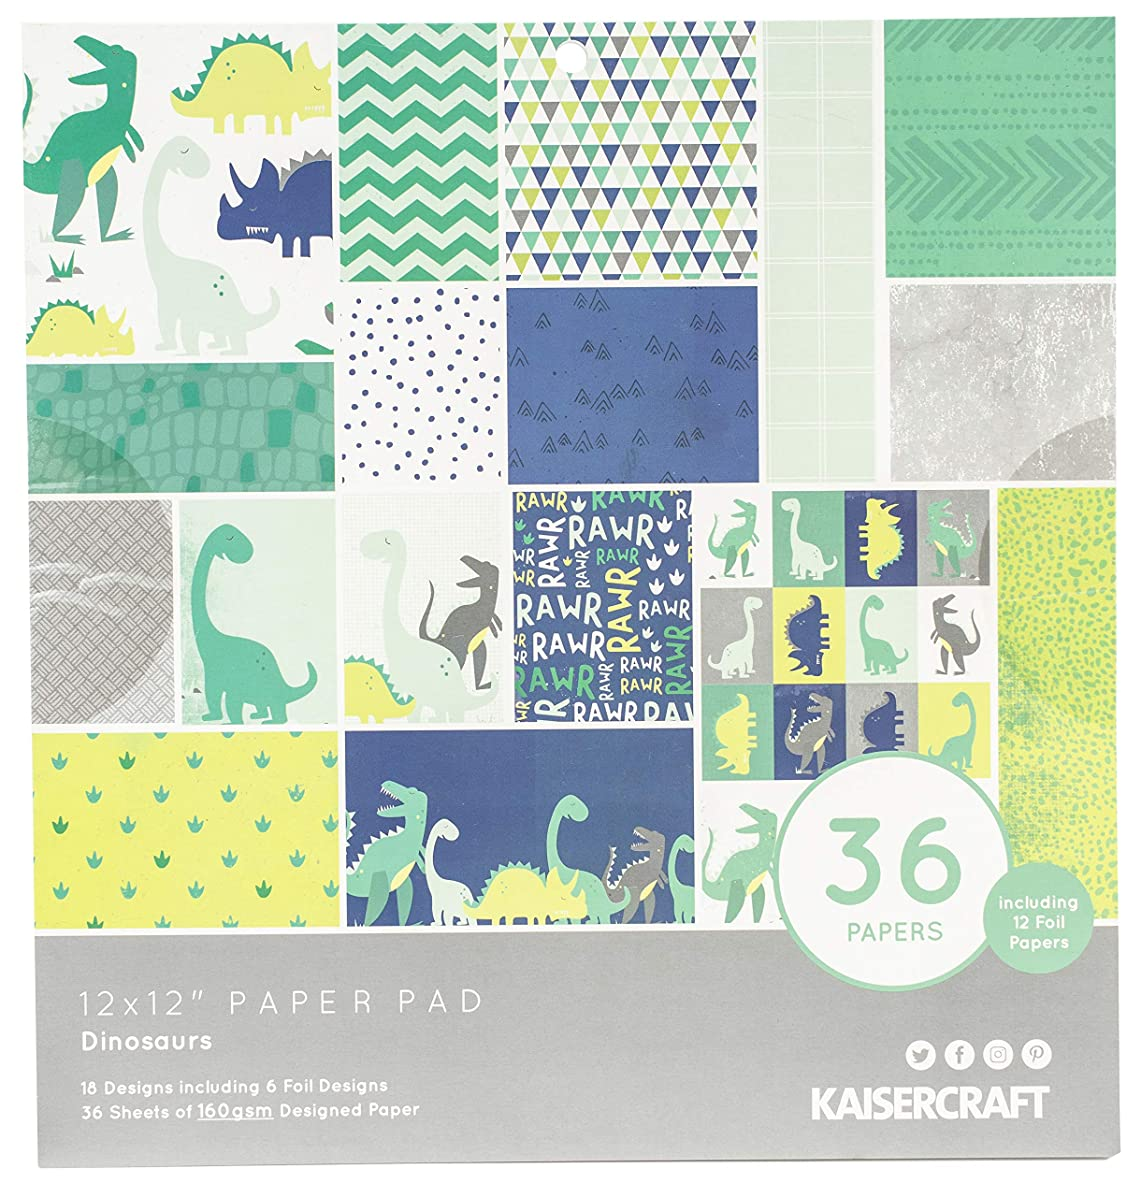 Kaisercraft PP256 Specialty Paper Pad 12